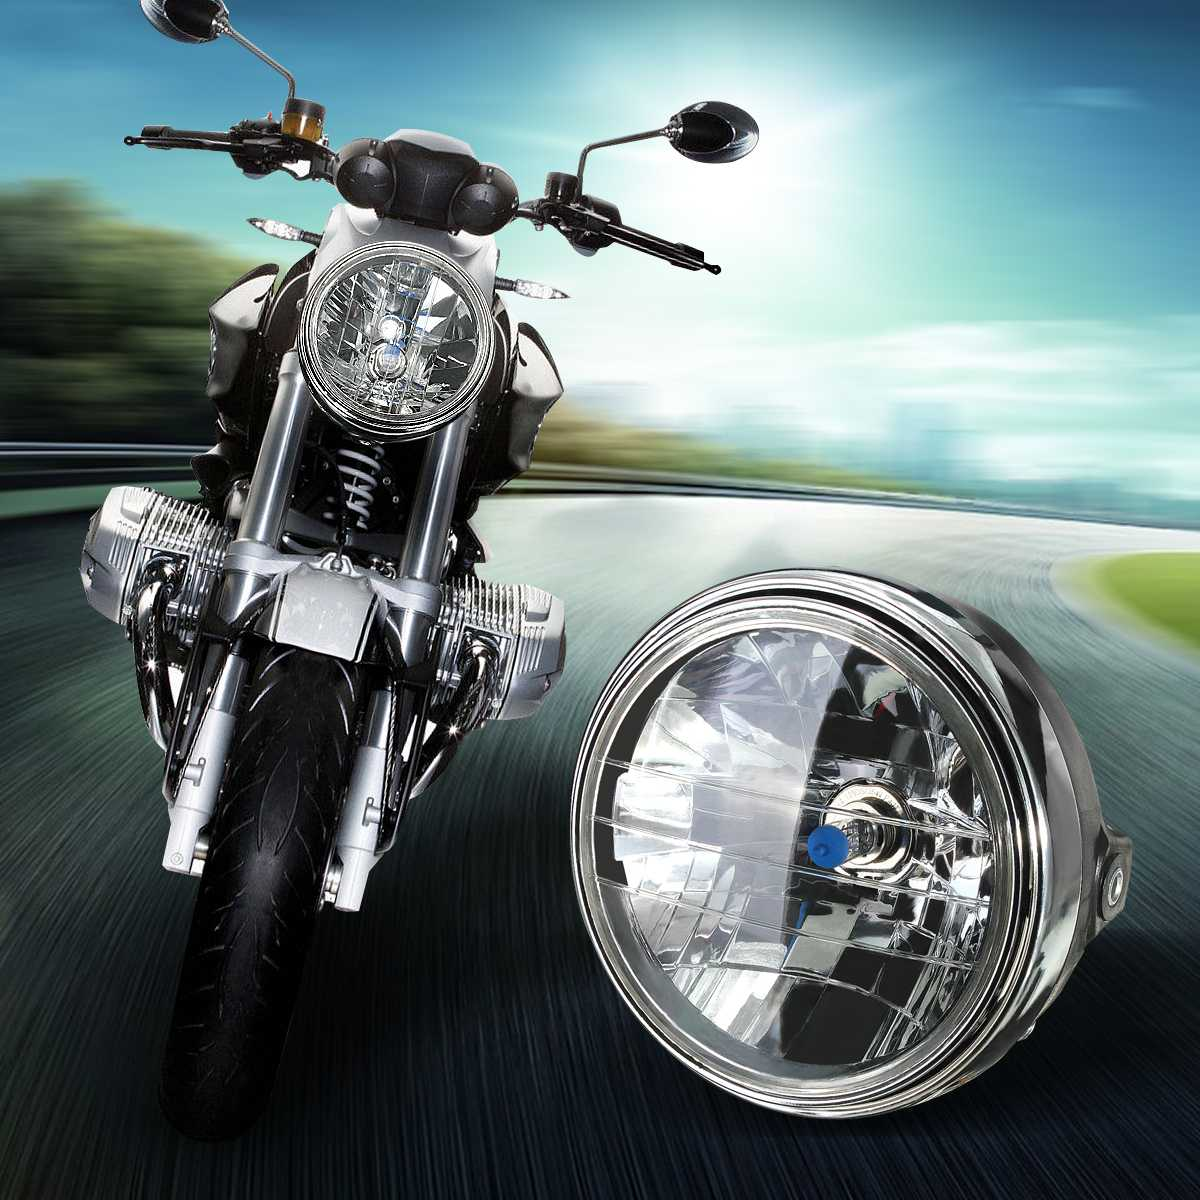 7 Inch Motorcycle Headlight Round H4 LED Head Lamp For Honda For Kawasaki For Suzuki For Yamaha